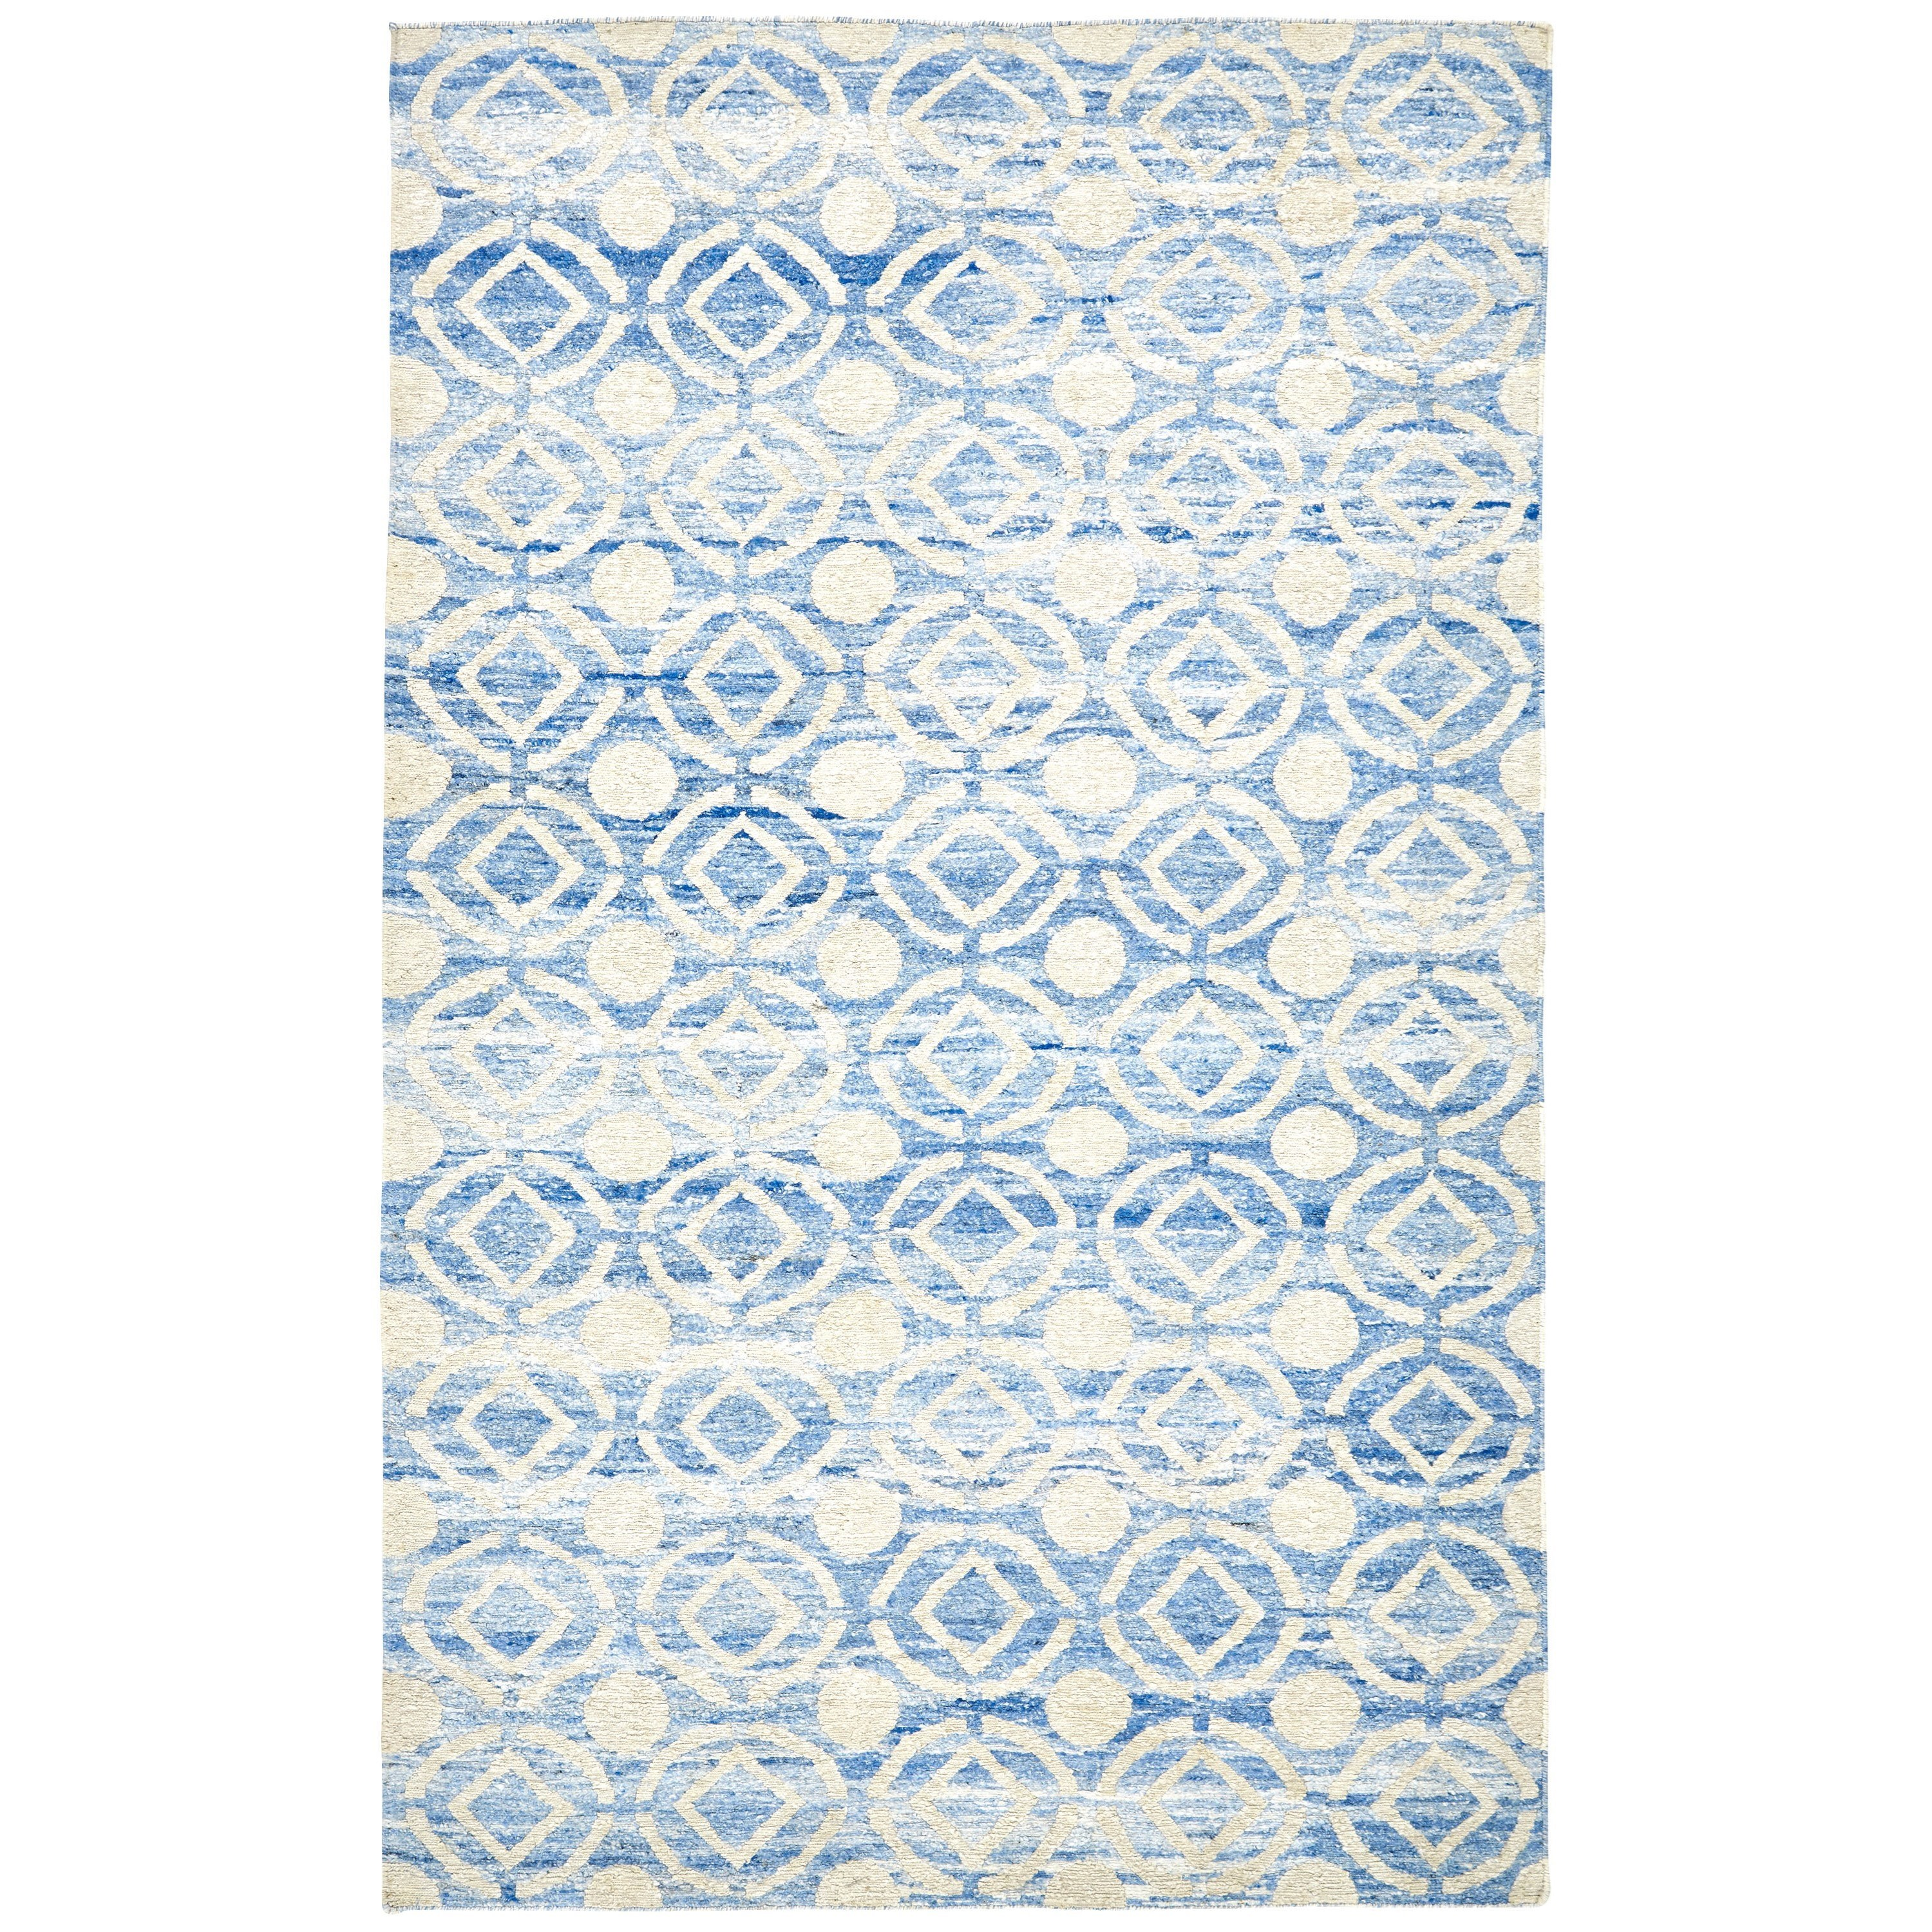 """Sabrine Ocean 8'-6"""" x 11'-6"""" Area Rug by Feizy Rugs at Jacksonville Furniture Mart"""